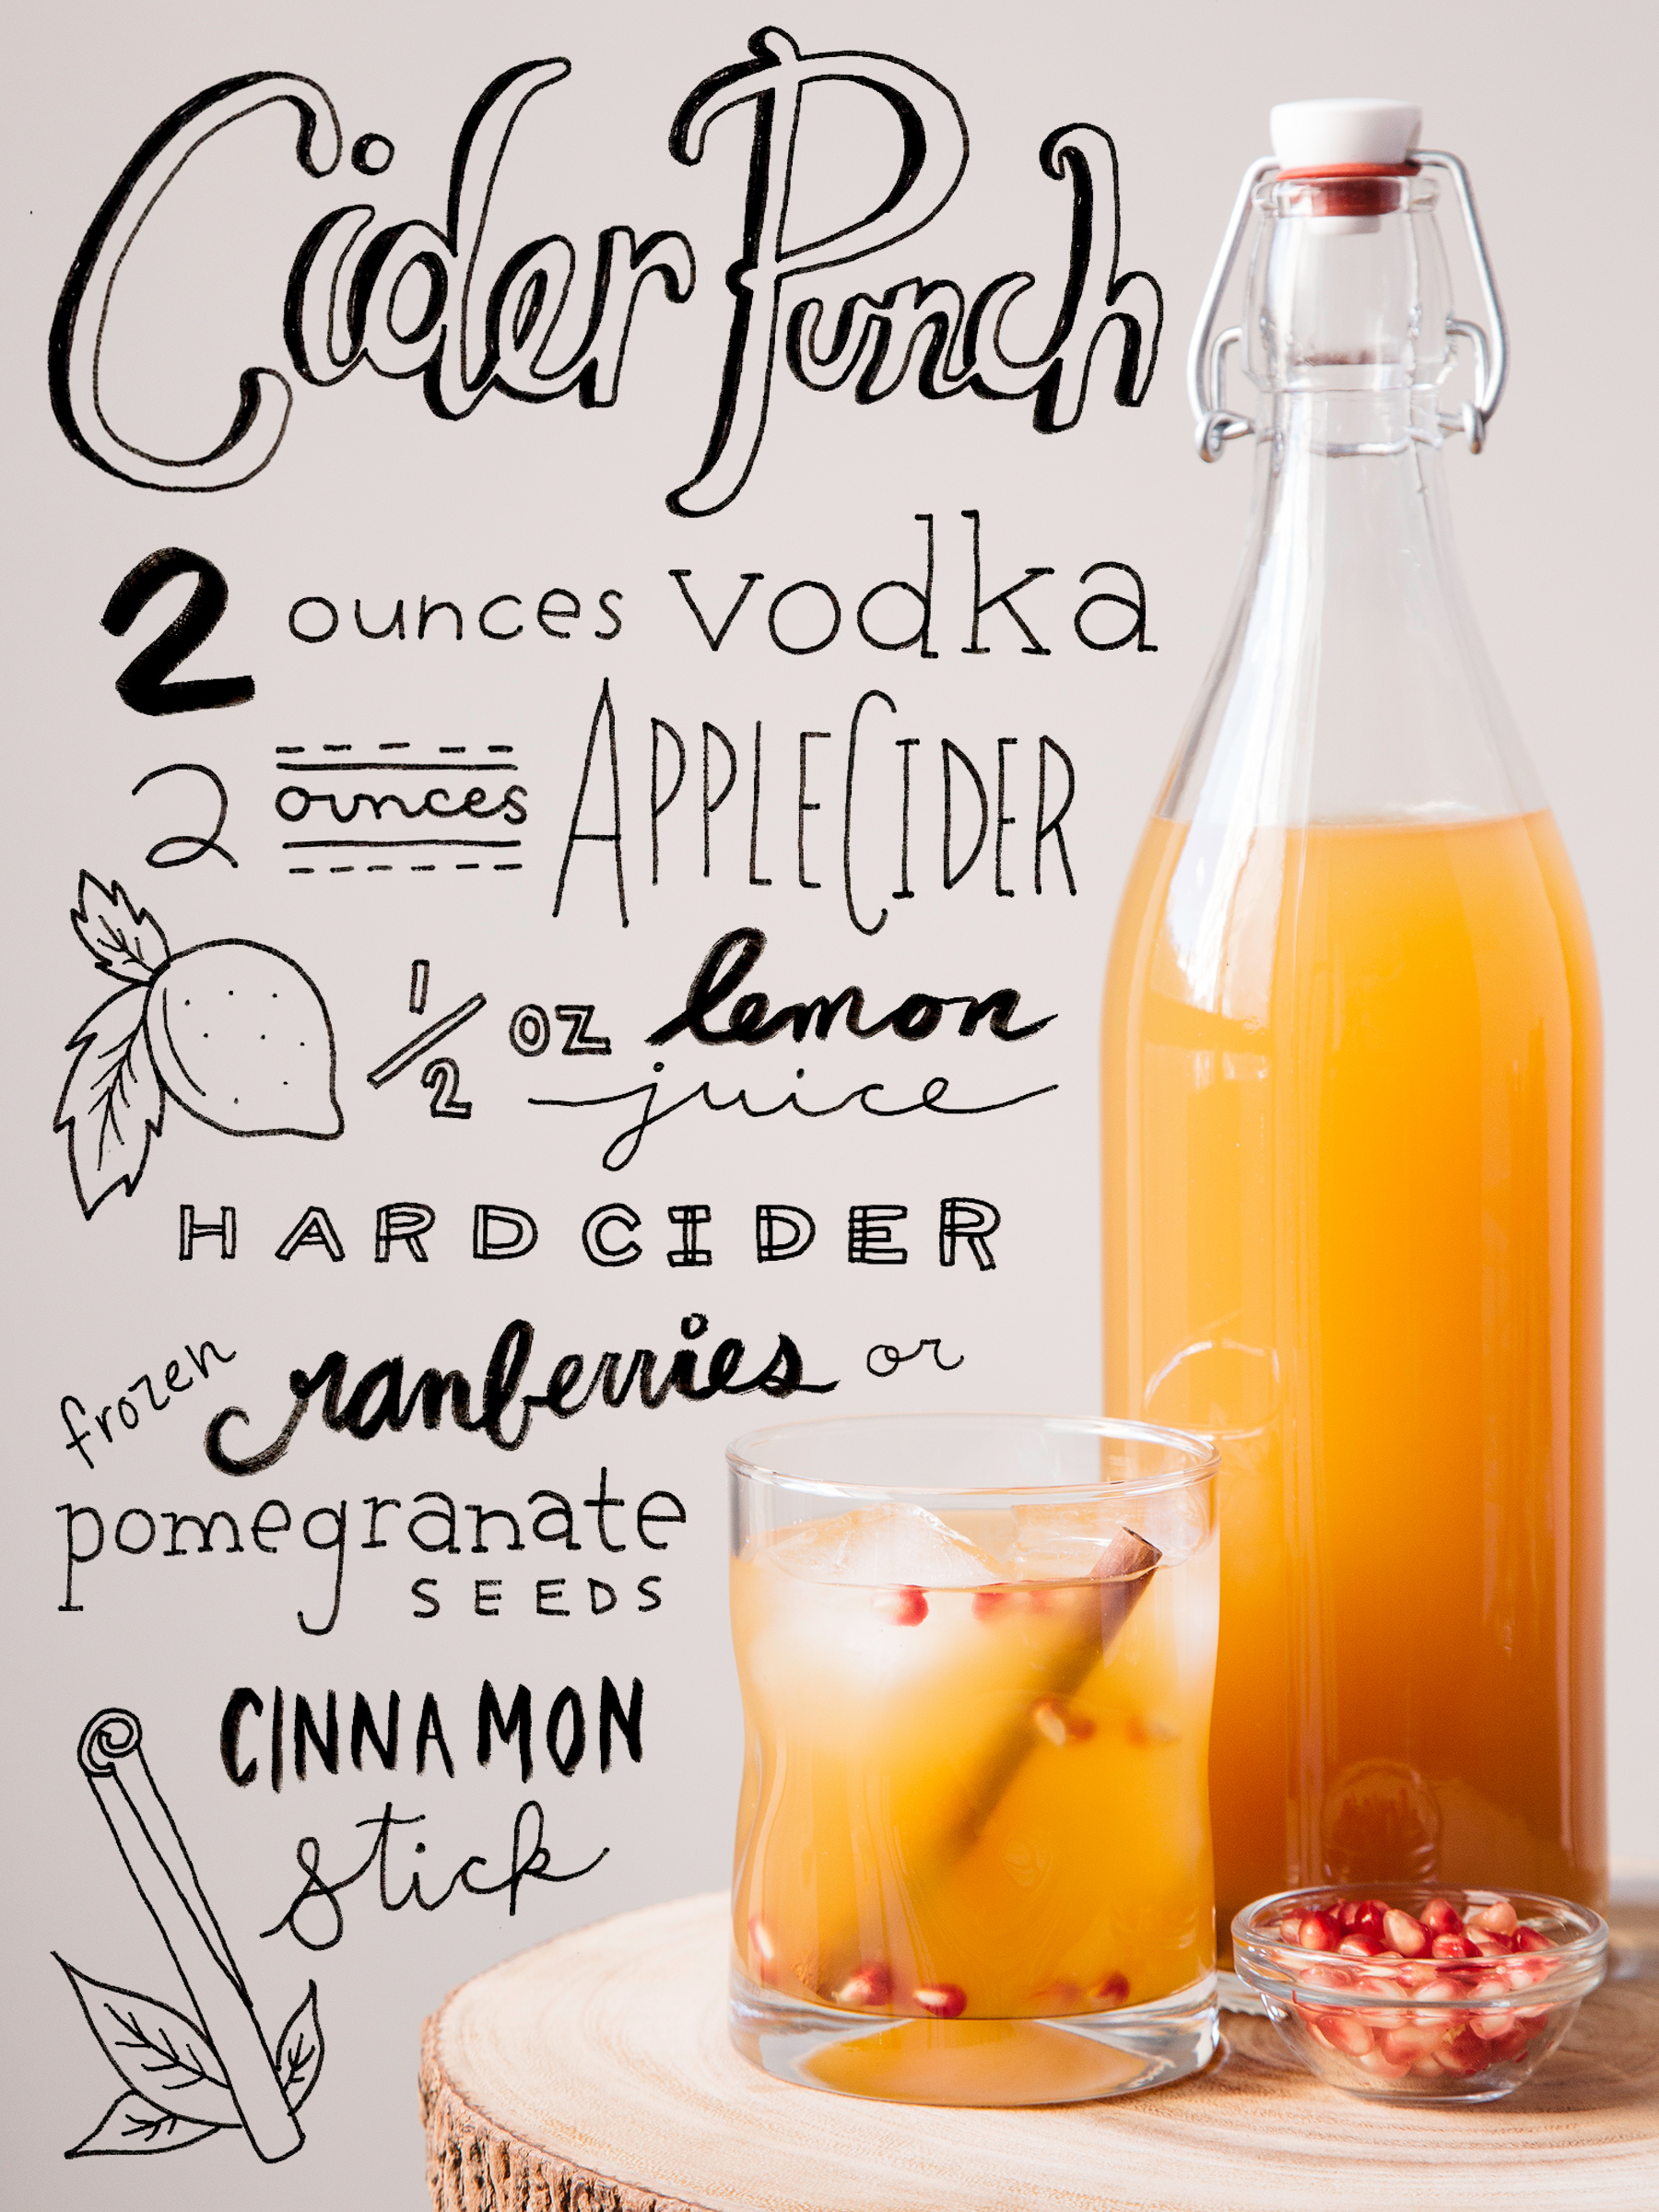 Fall_Cocktails_Cider_Punch.jpg